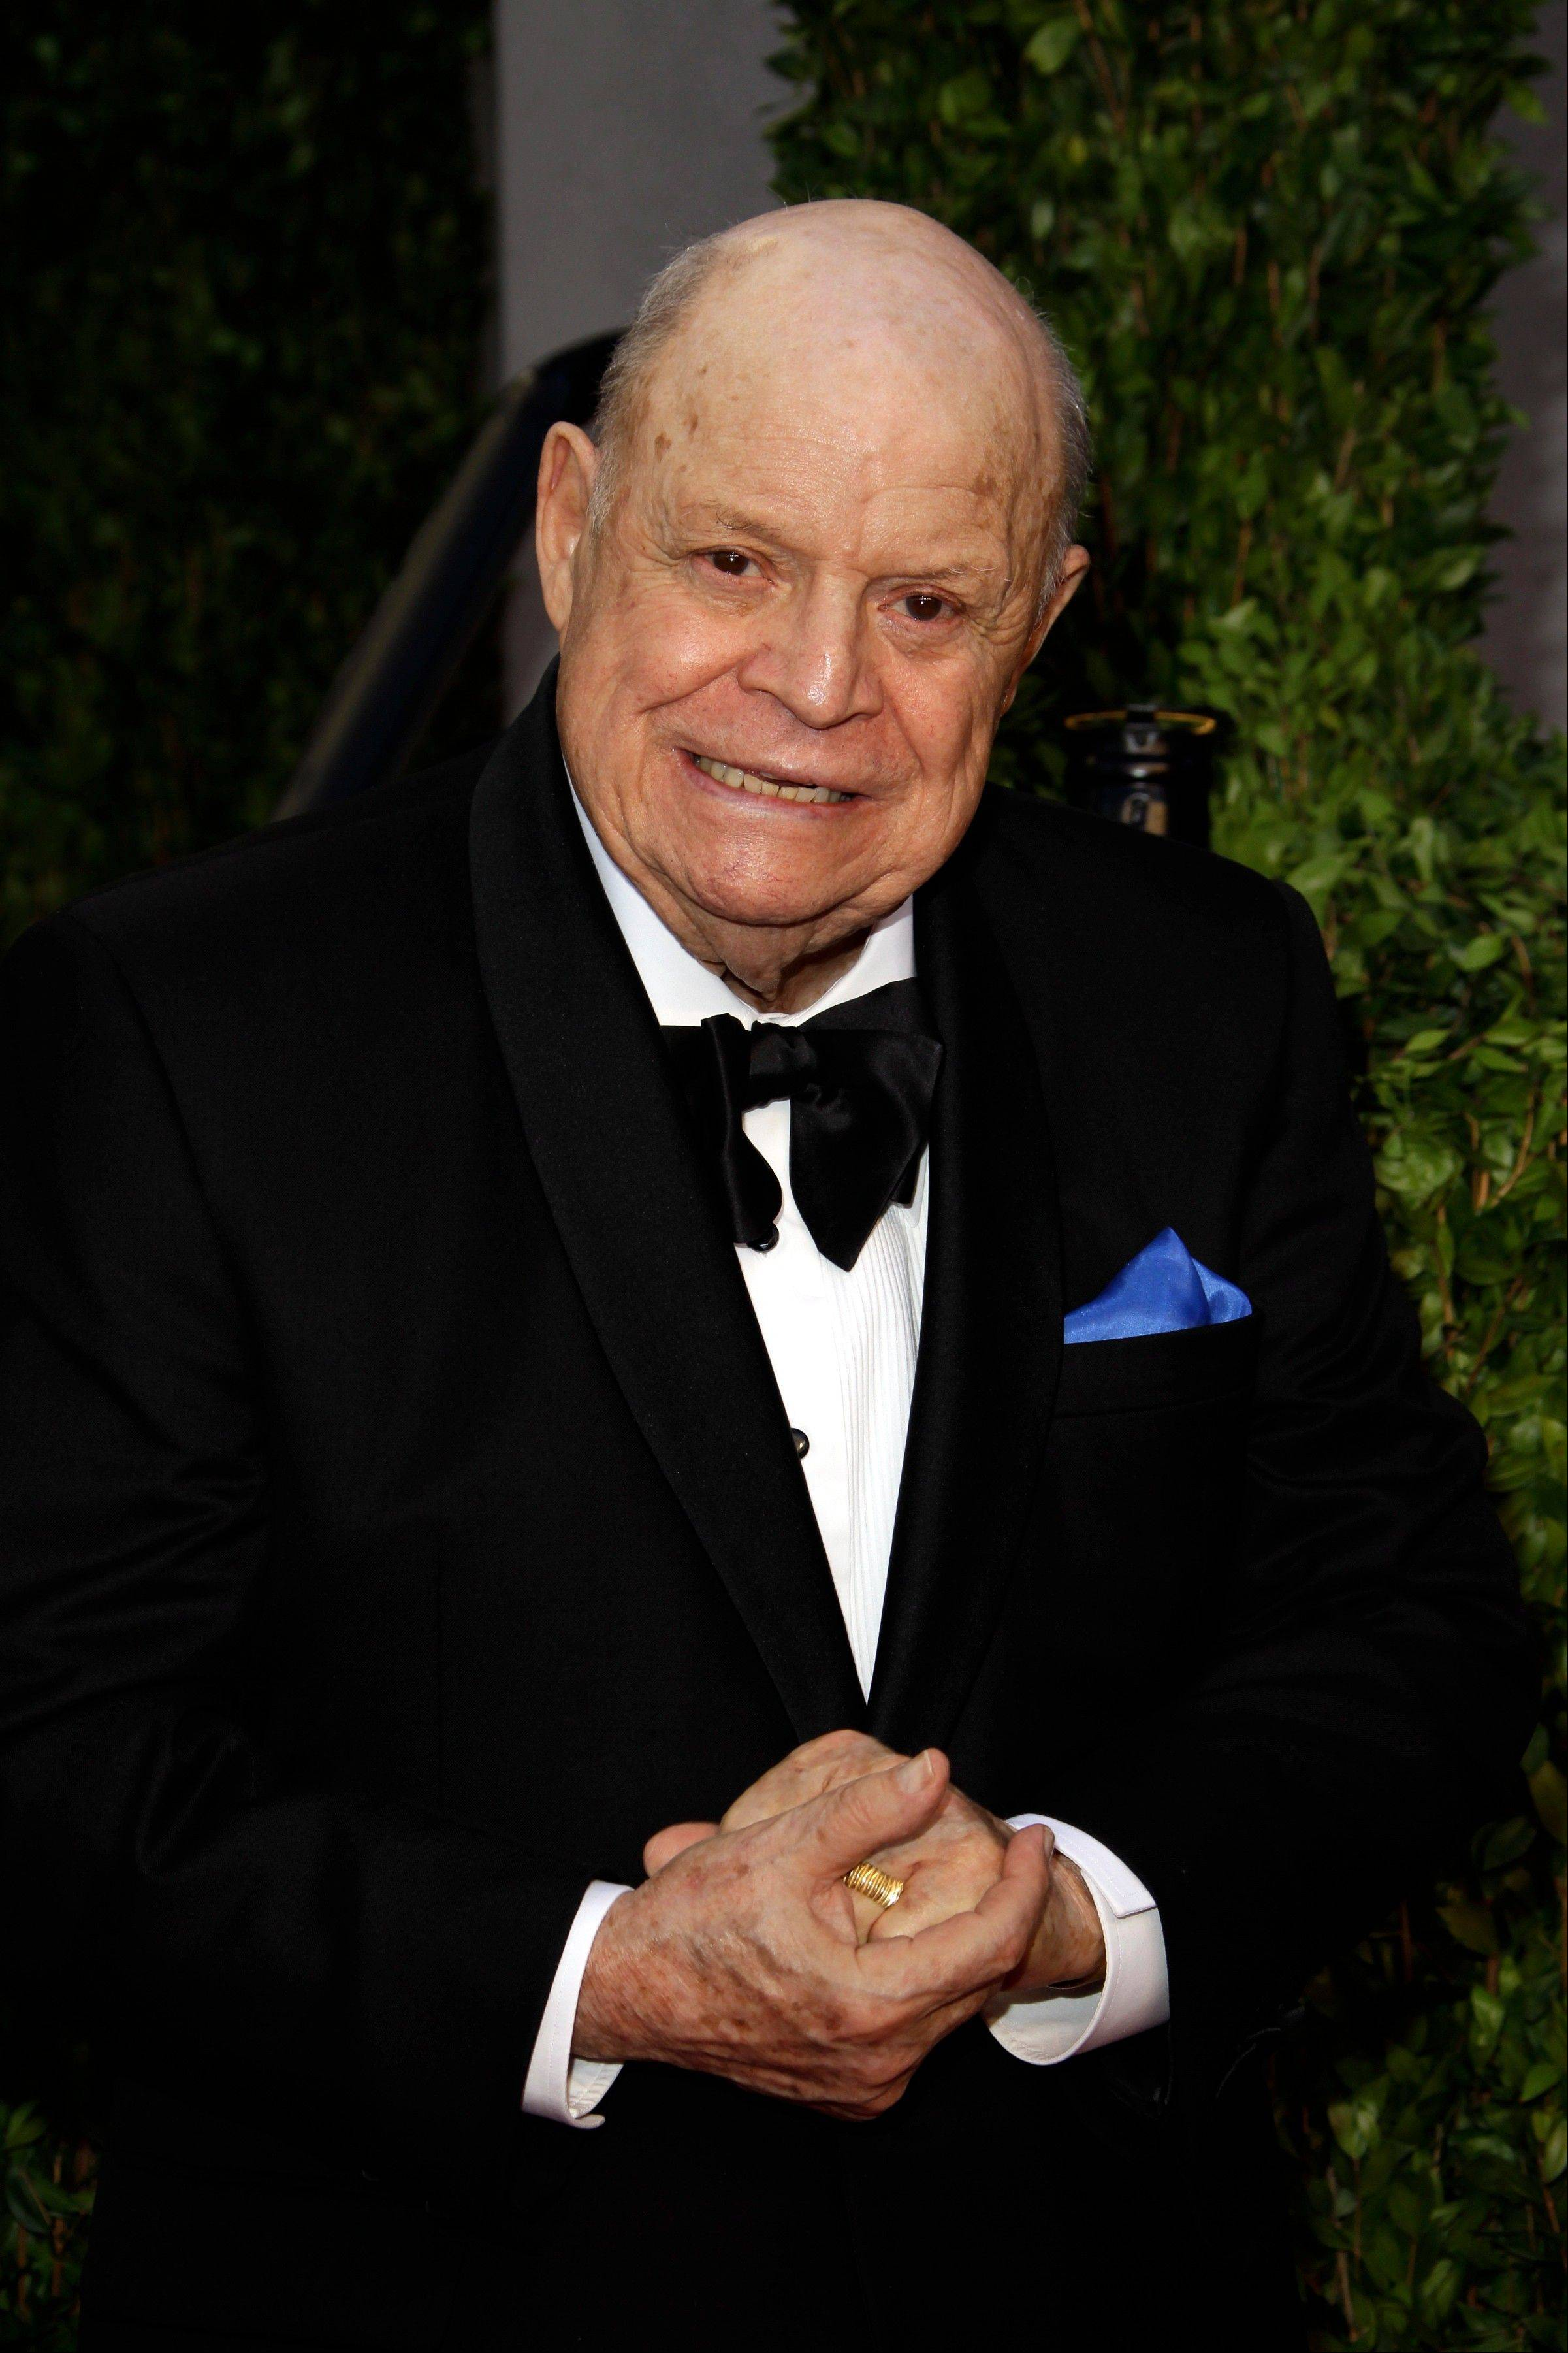 Comedian Don Rickles is set to play the Arcada Theatre in St. Charles.